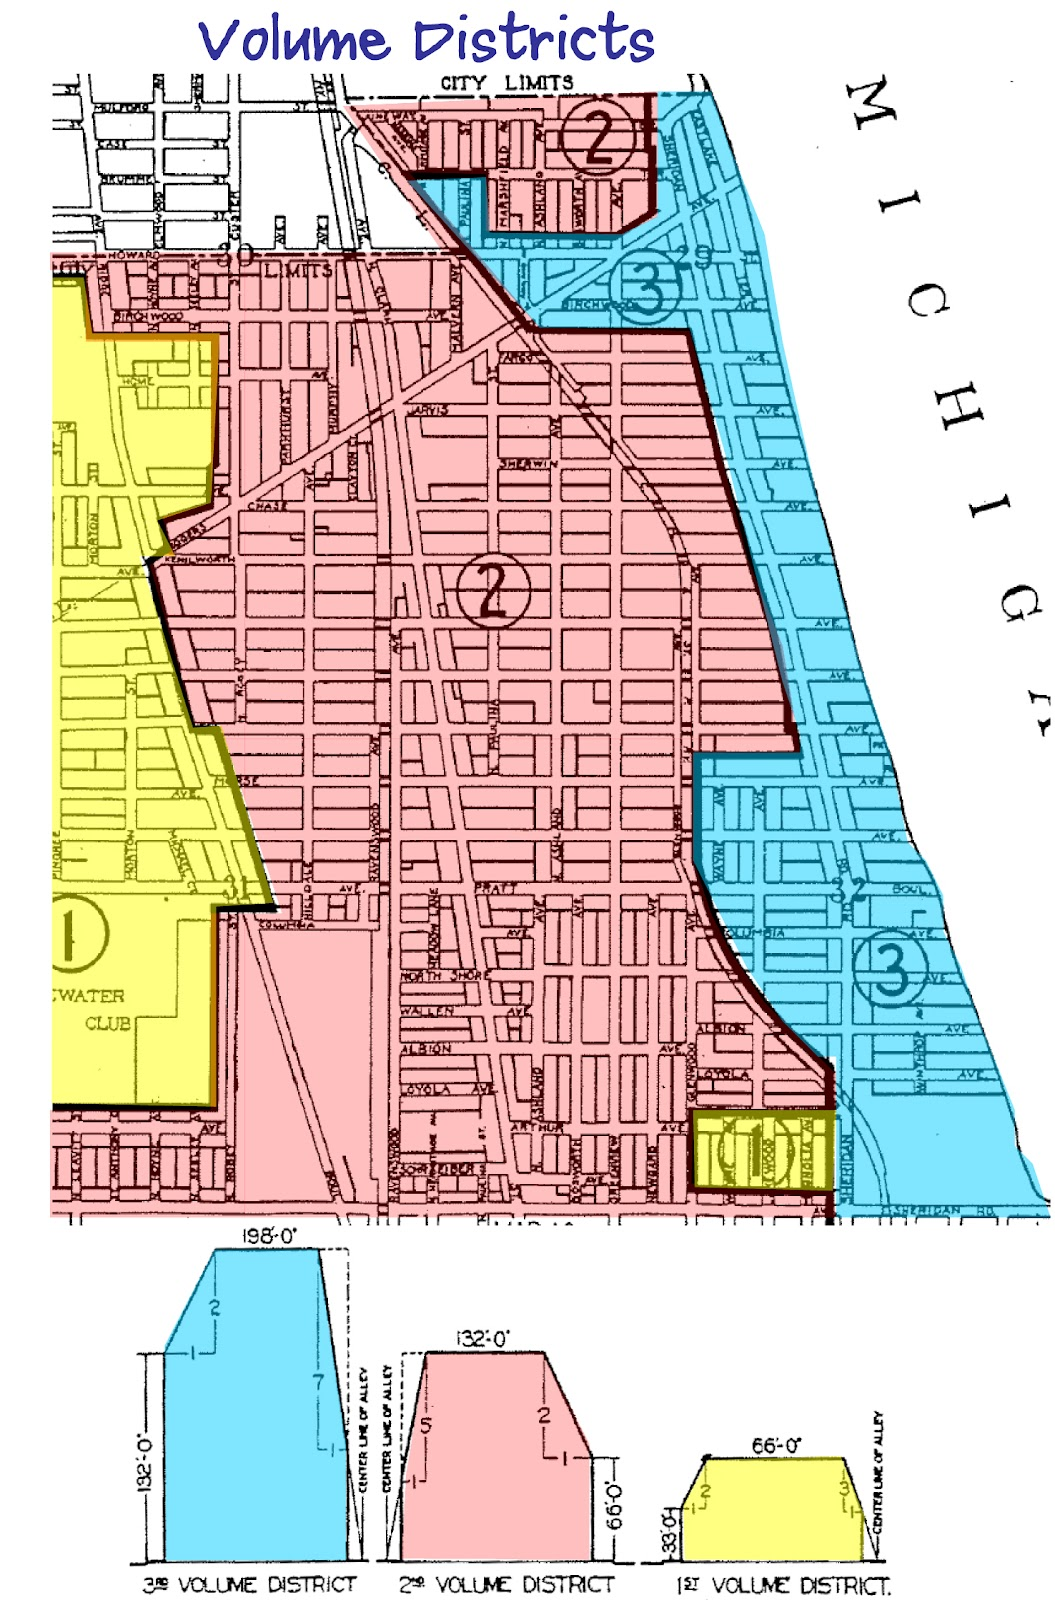 Rs Zoning Code http://ultralocal.blogspot.com/2011/07/1923-zoning-code-rogers-park-and.html